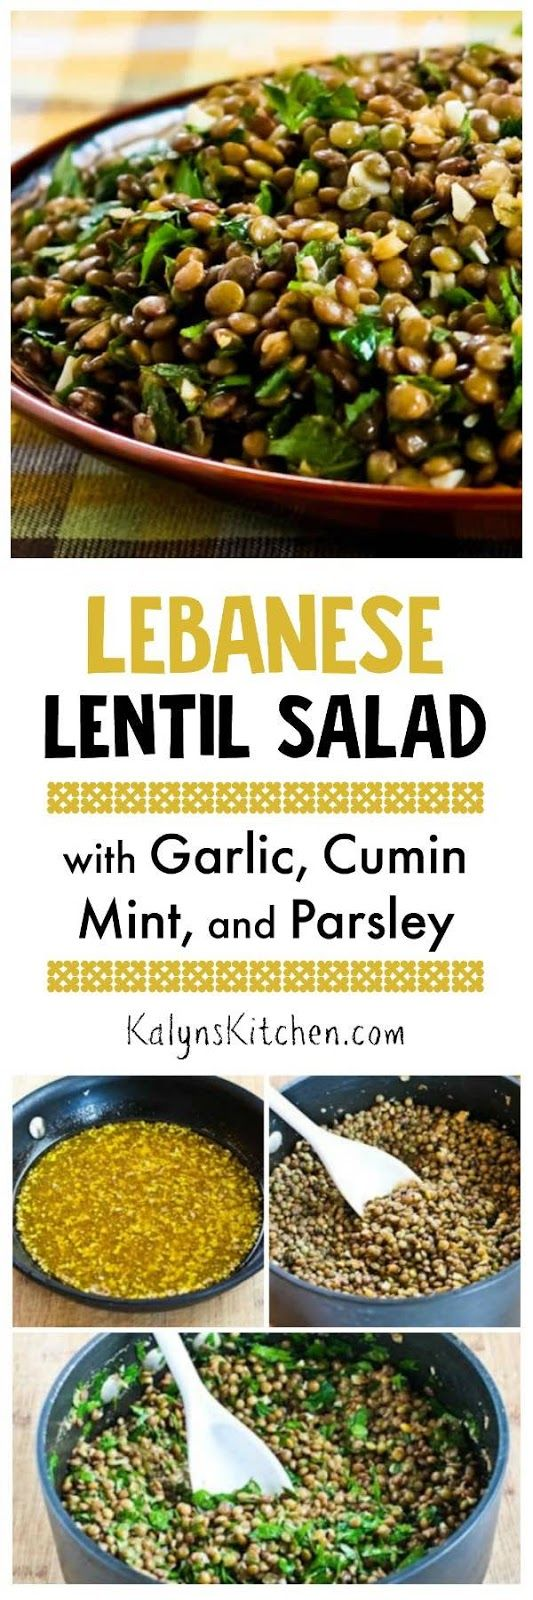 I love, love, love lentils, and this Lebanese Lentil Salad with Garlic, Cumin, Mint, and Parsley has some of my favorite flavors. And this tasty slow carb salad is vegan, dairy-free, and gluten-free and if you use portion control this is South Beach Diet friendly as well. [found on KalynsKitchen.com]